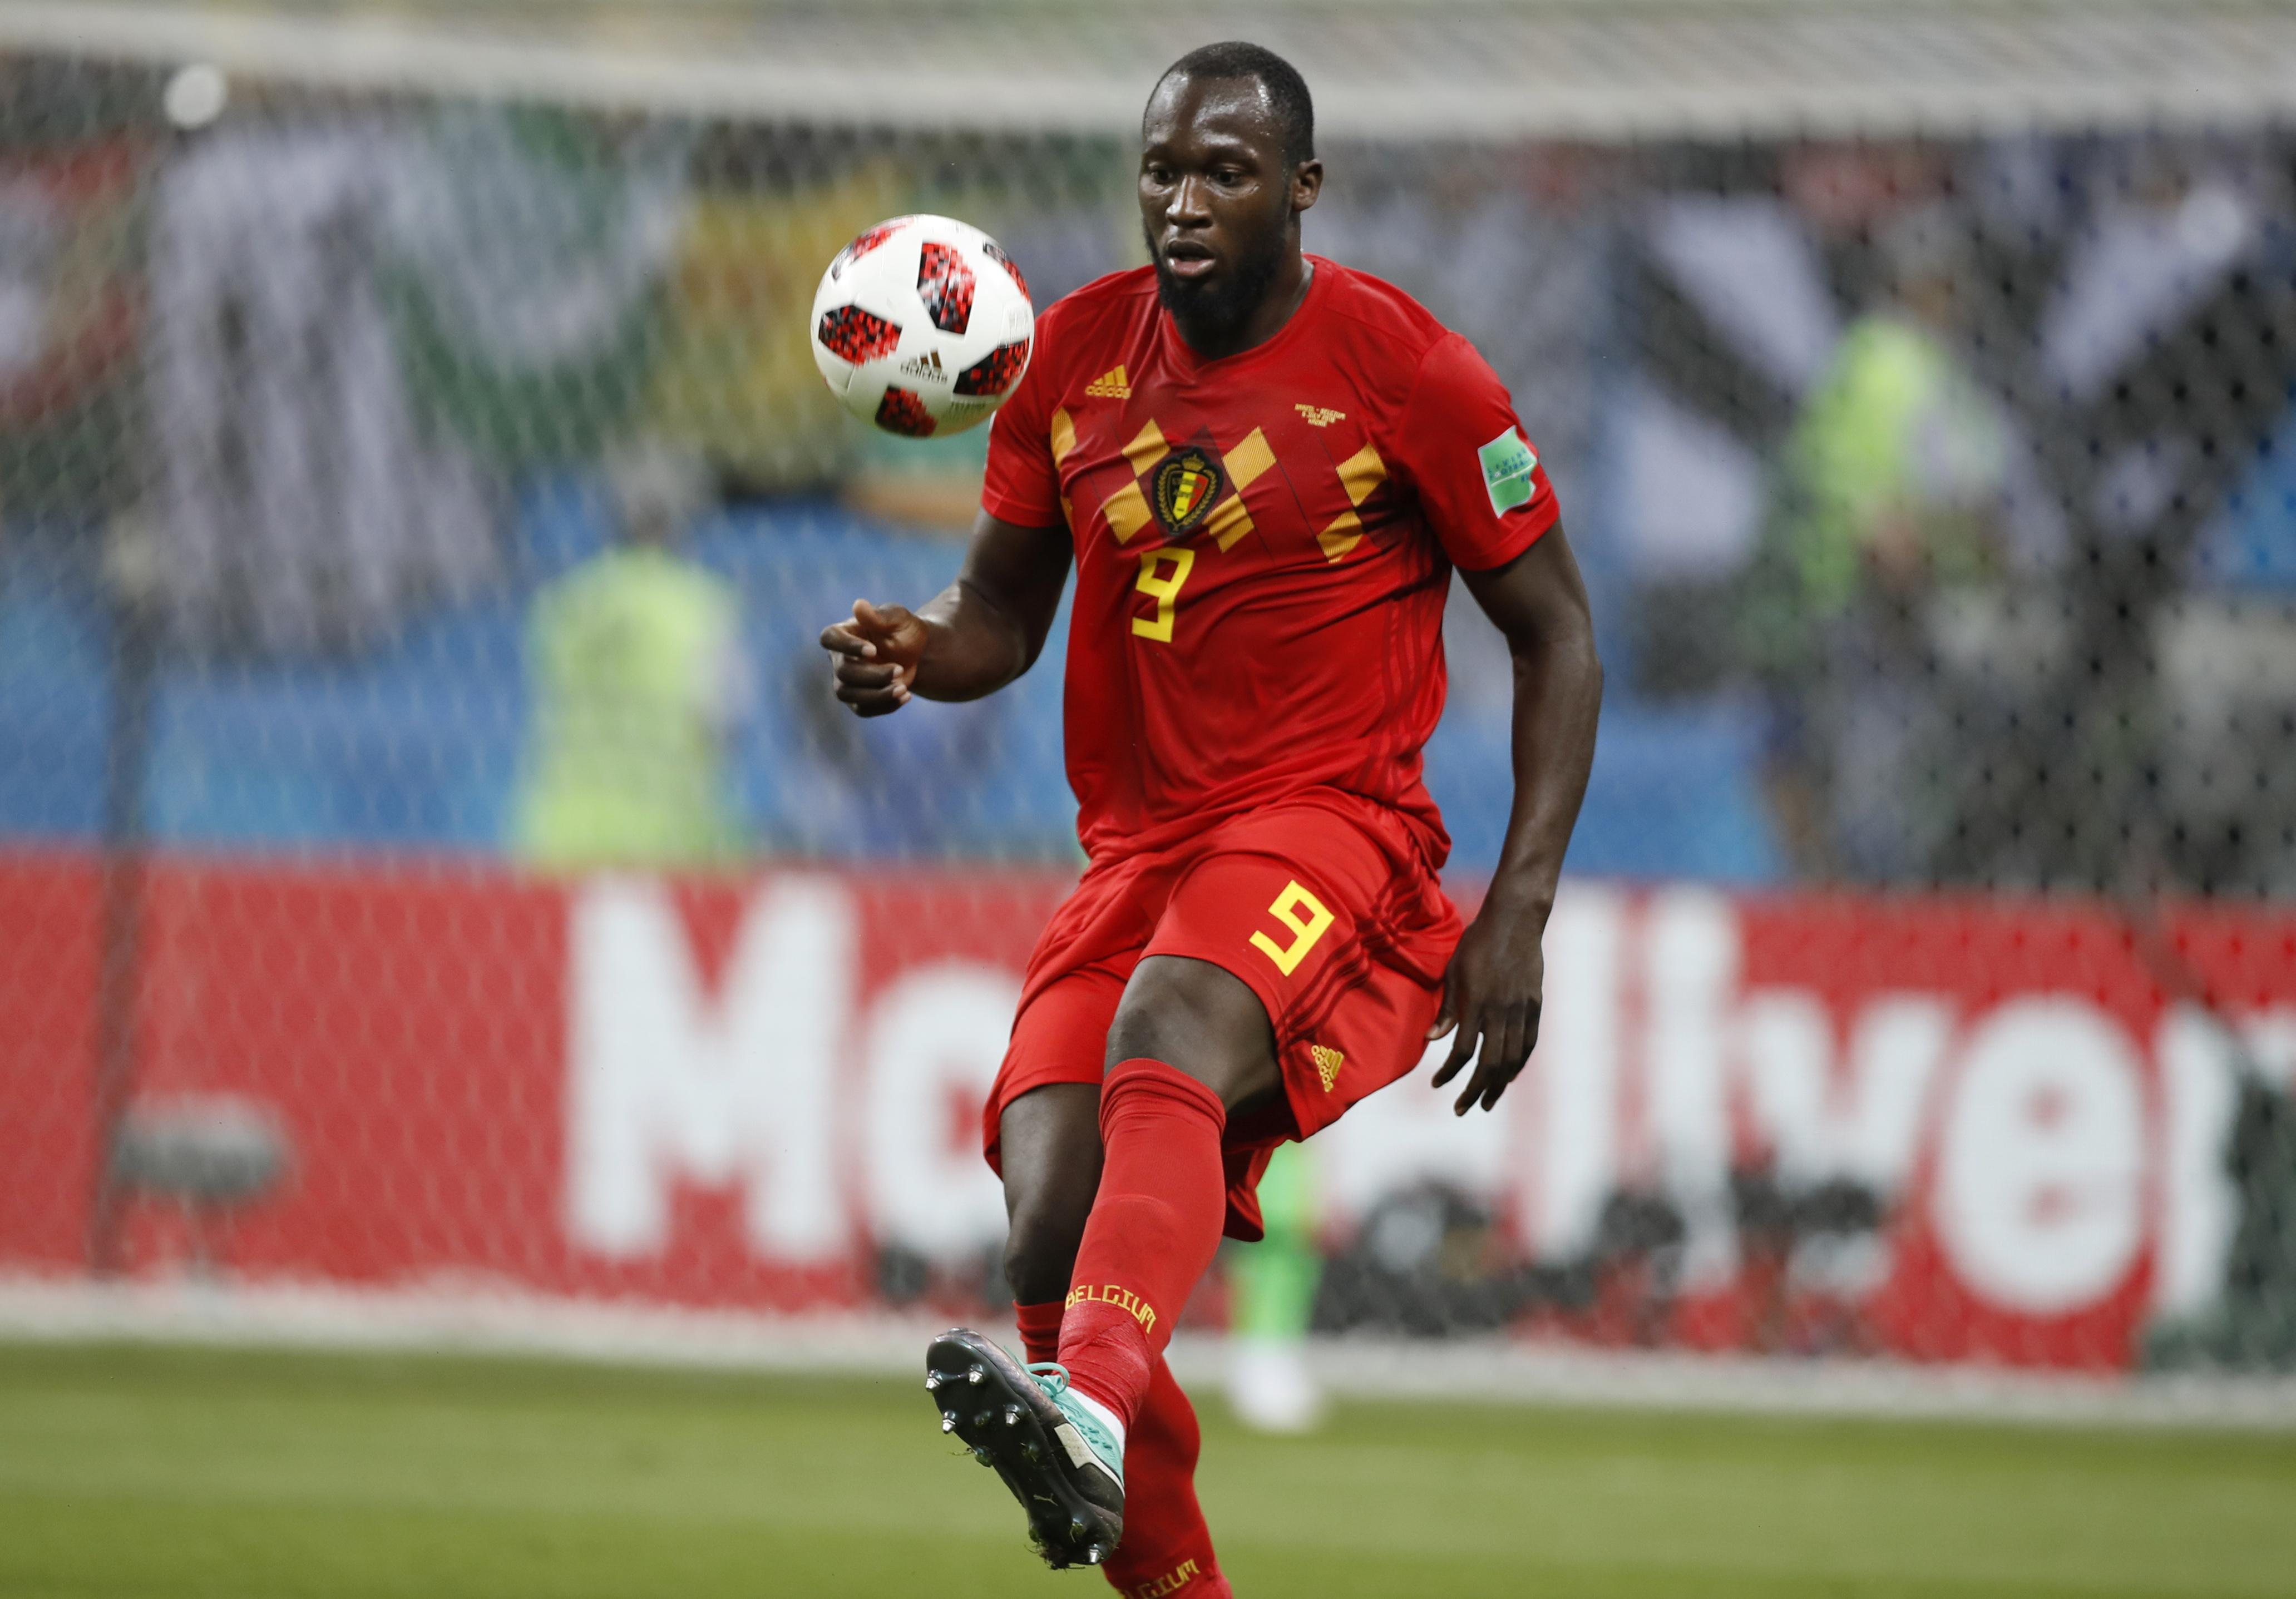 Lukaku played a crucial role in Belgium's second goal against Brazil in the quarter-final